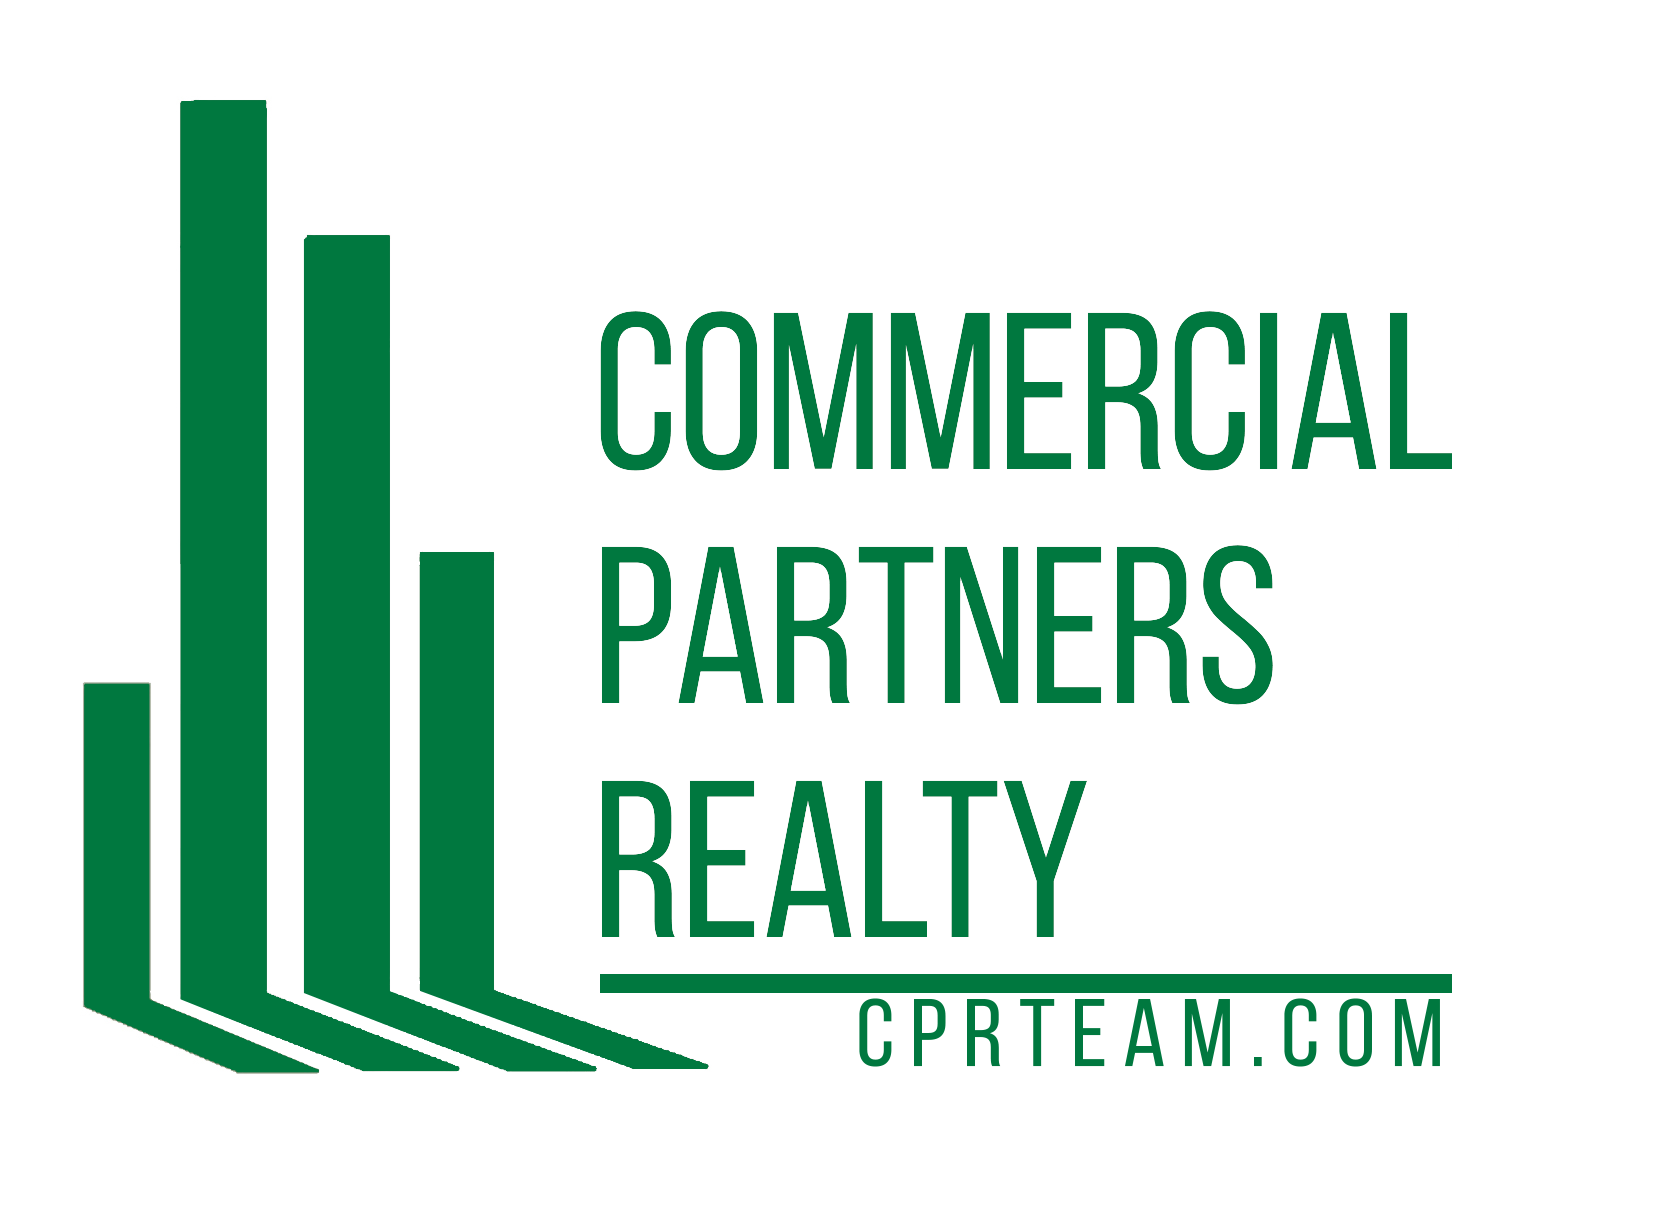 Commercial Partners